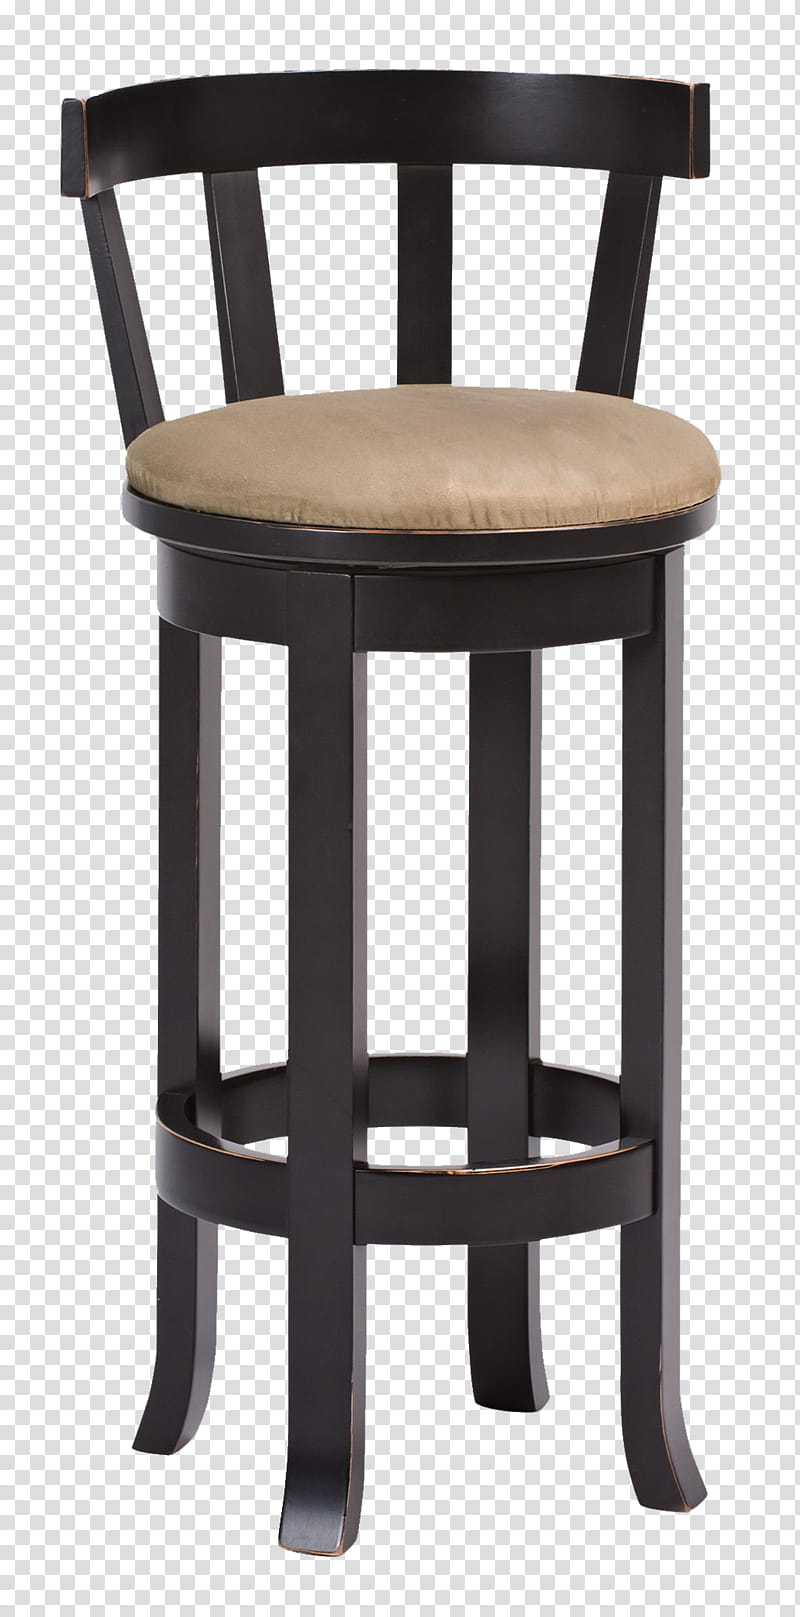 Brown wooden chair transparent background PNG clipart.